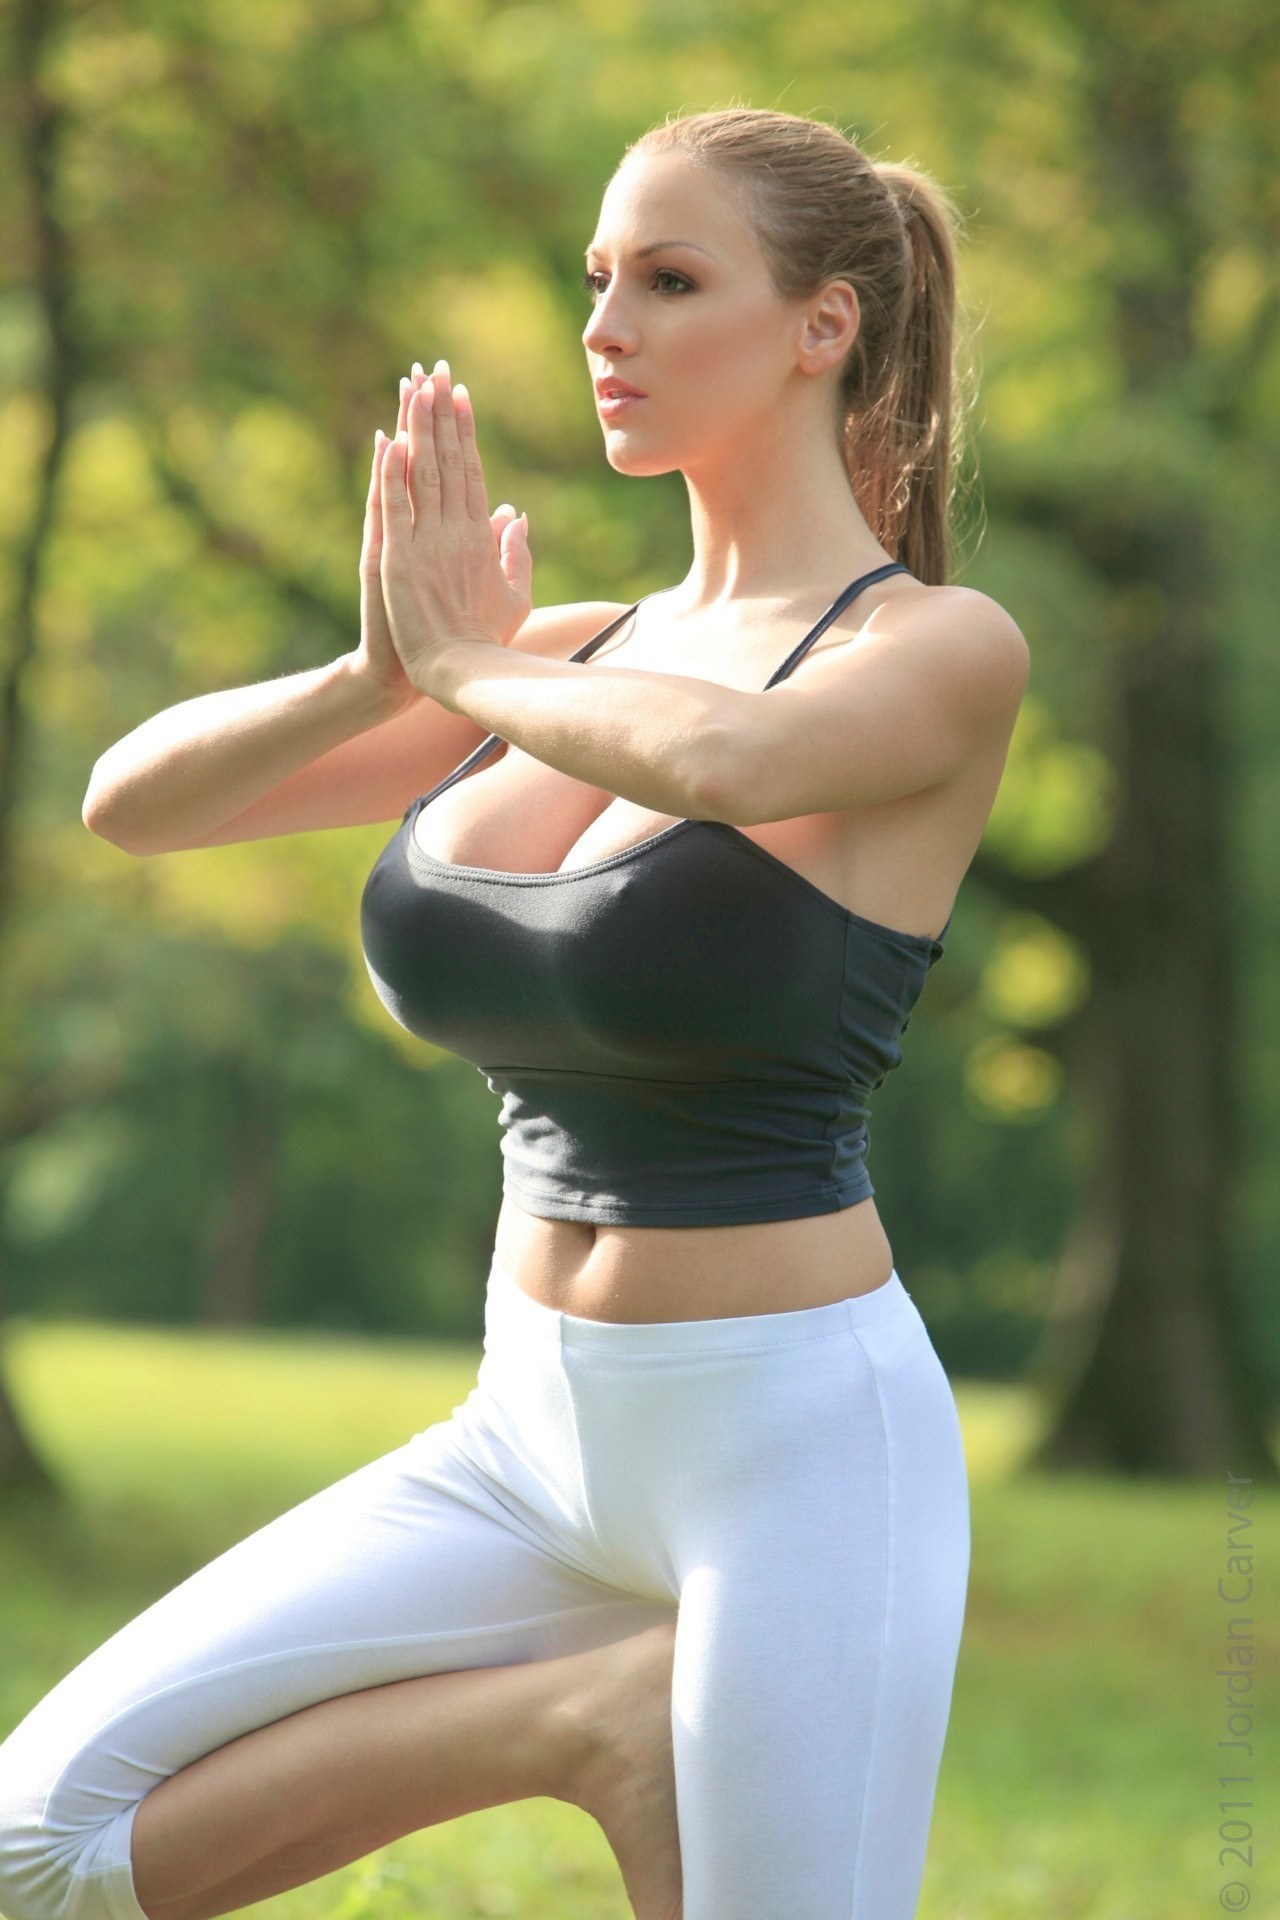 woman grass cleavage yoga HD Wallpaper